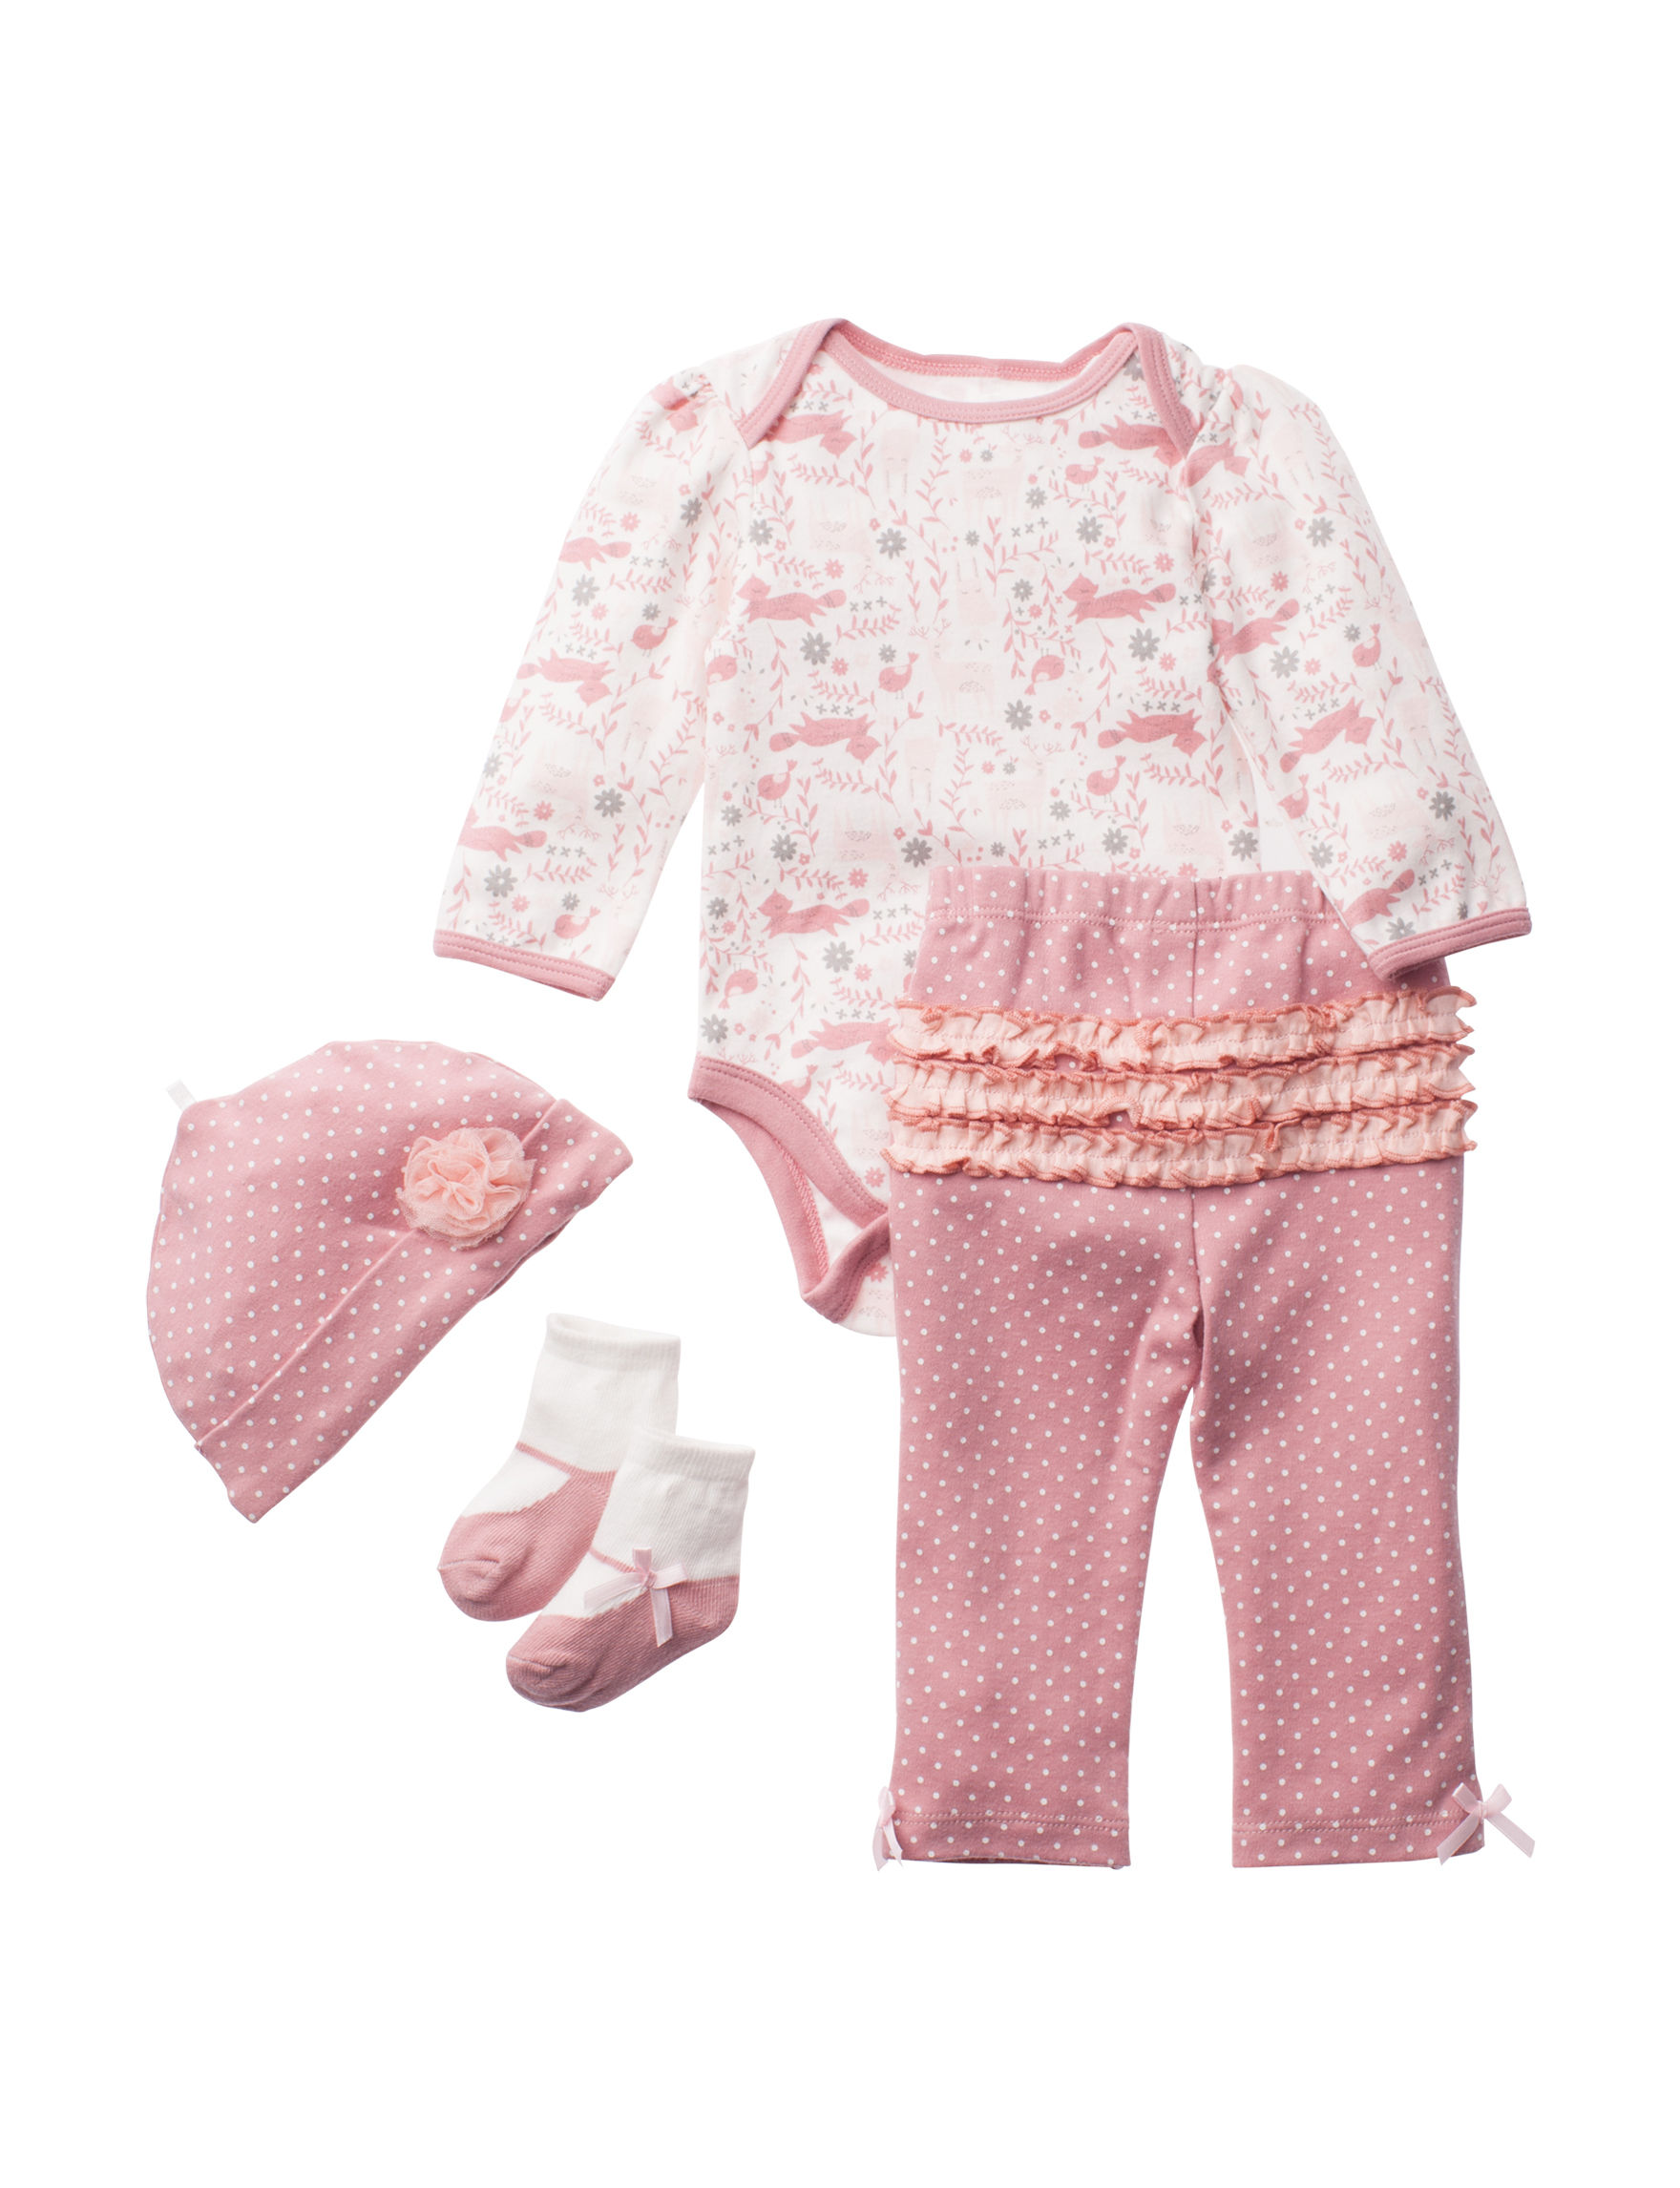 Baby Gear Ivory / Pink